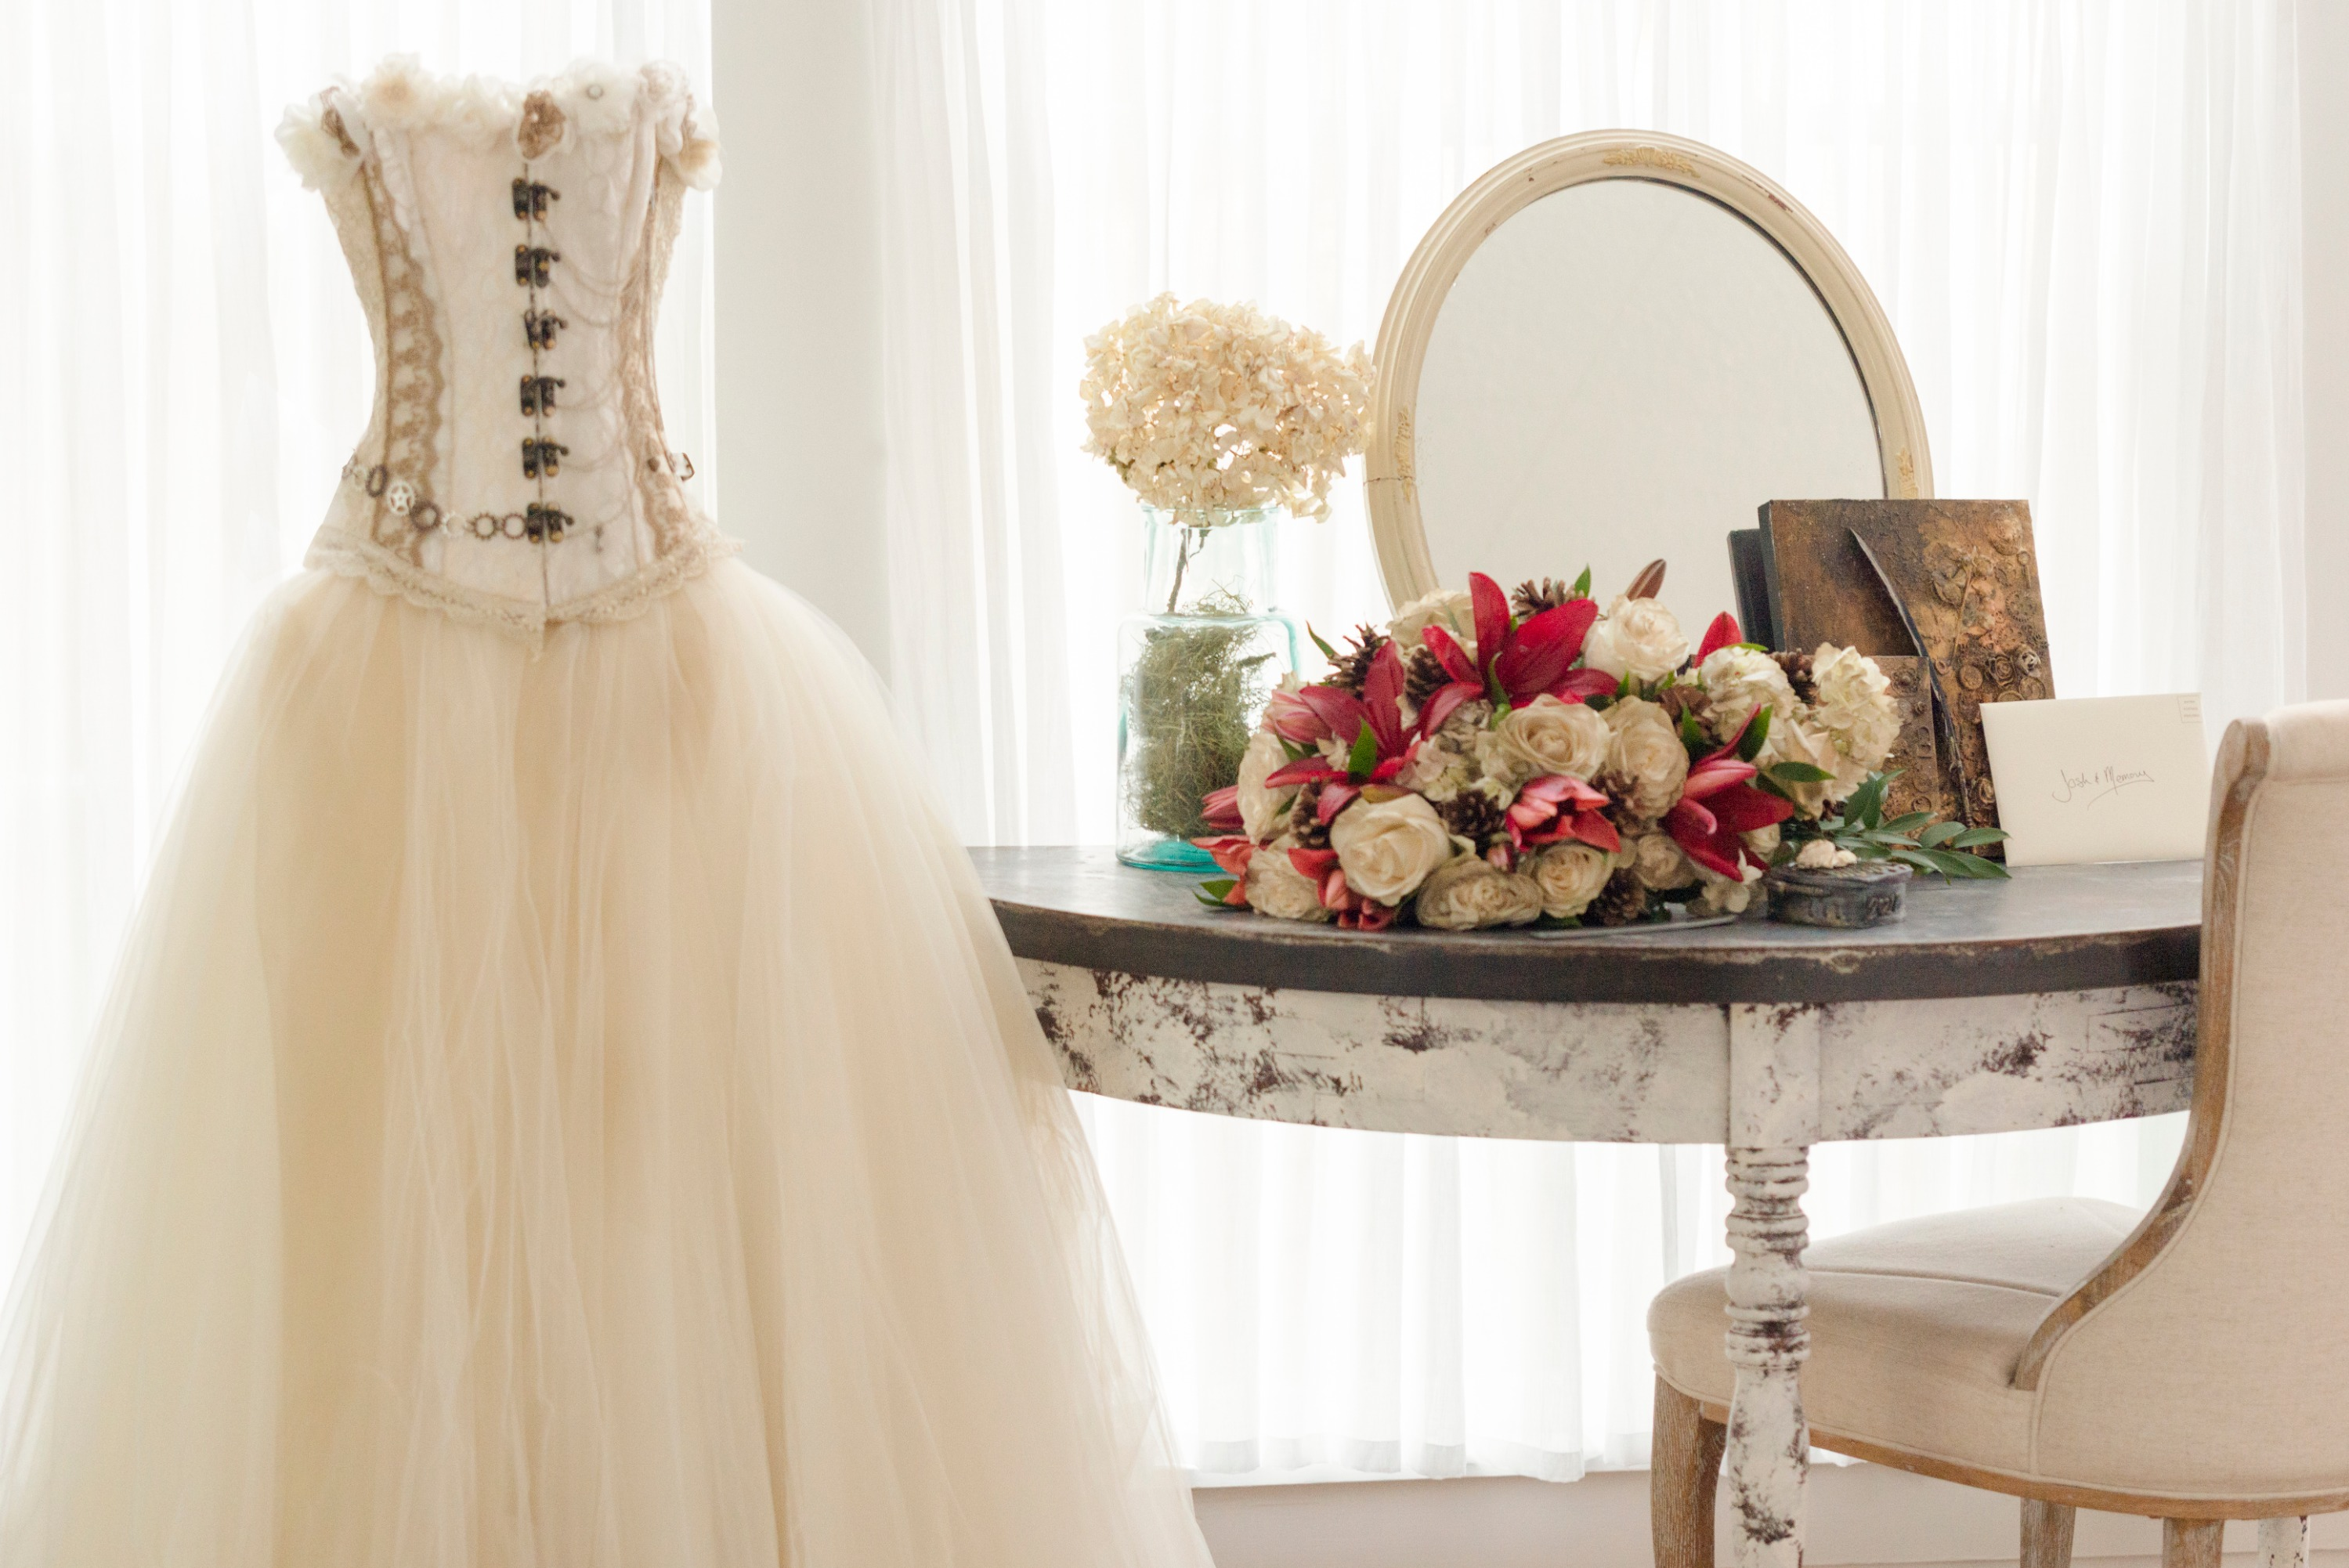 Wedding Dress & Floral Arrangement